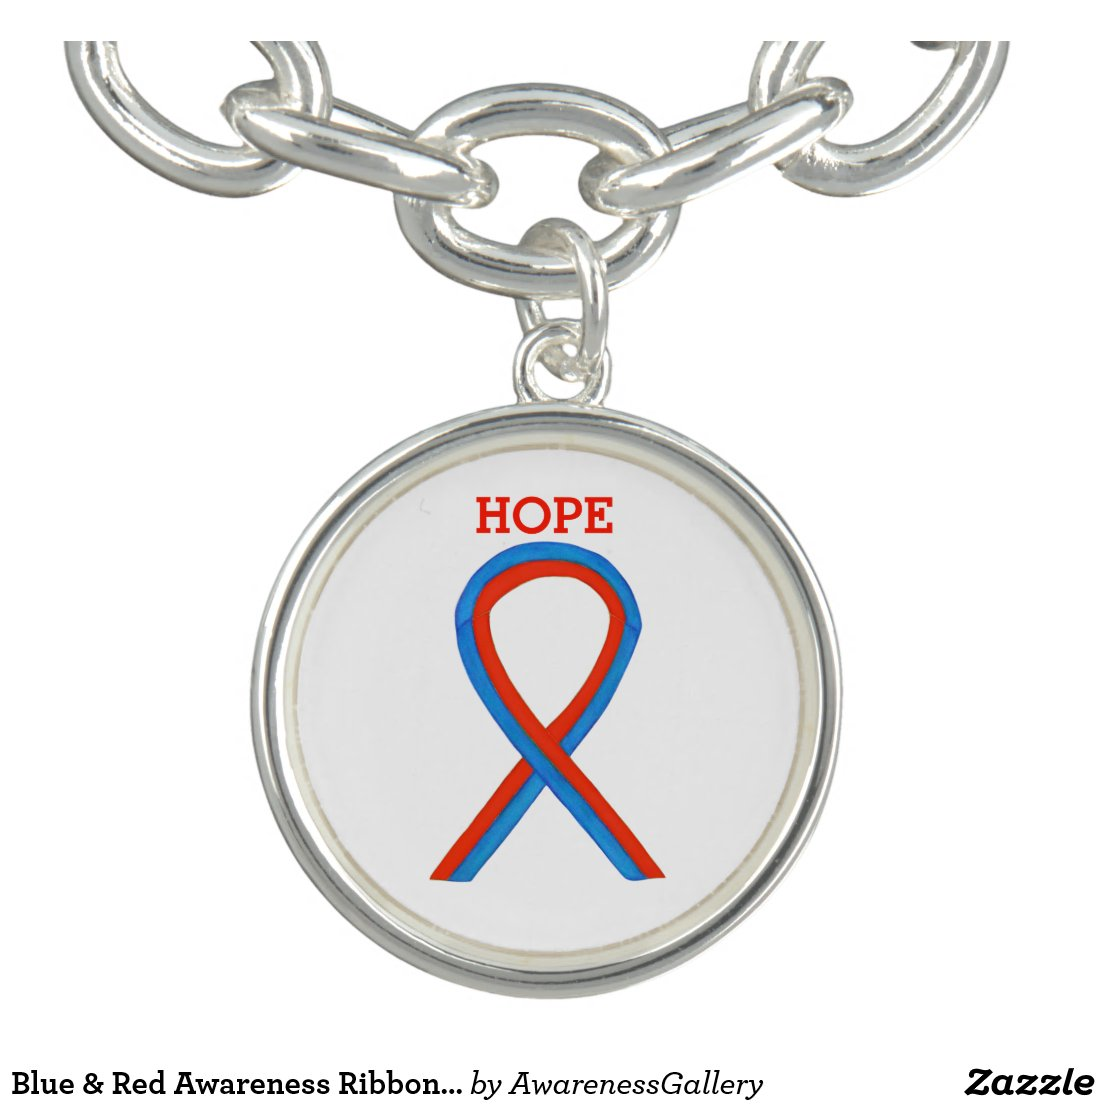 Blue & Red Awareness Ribbon Jewelry Charm Bracelet